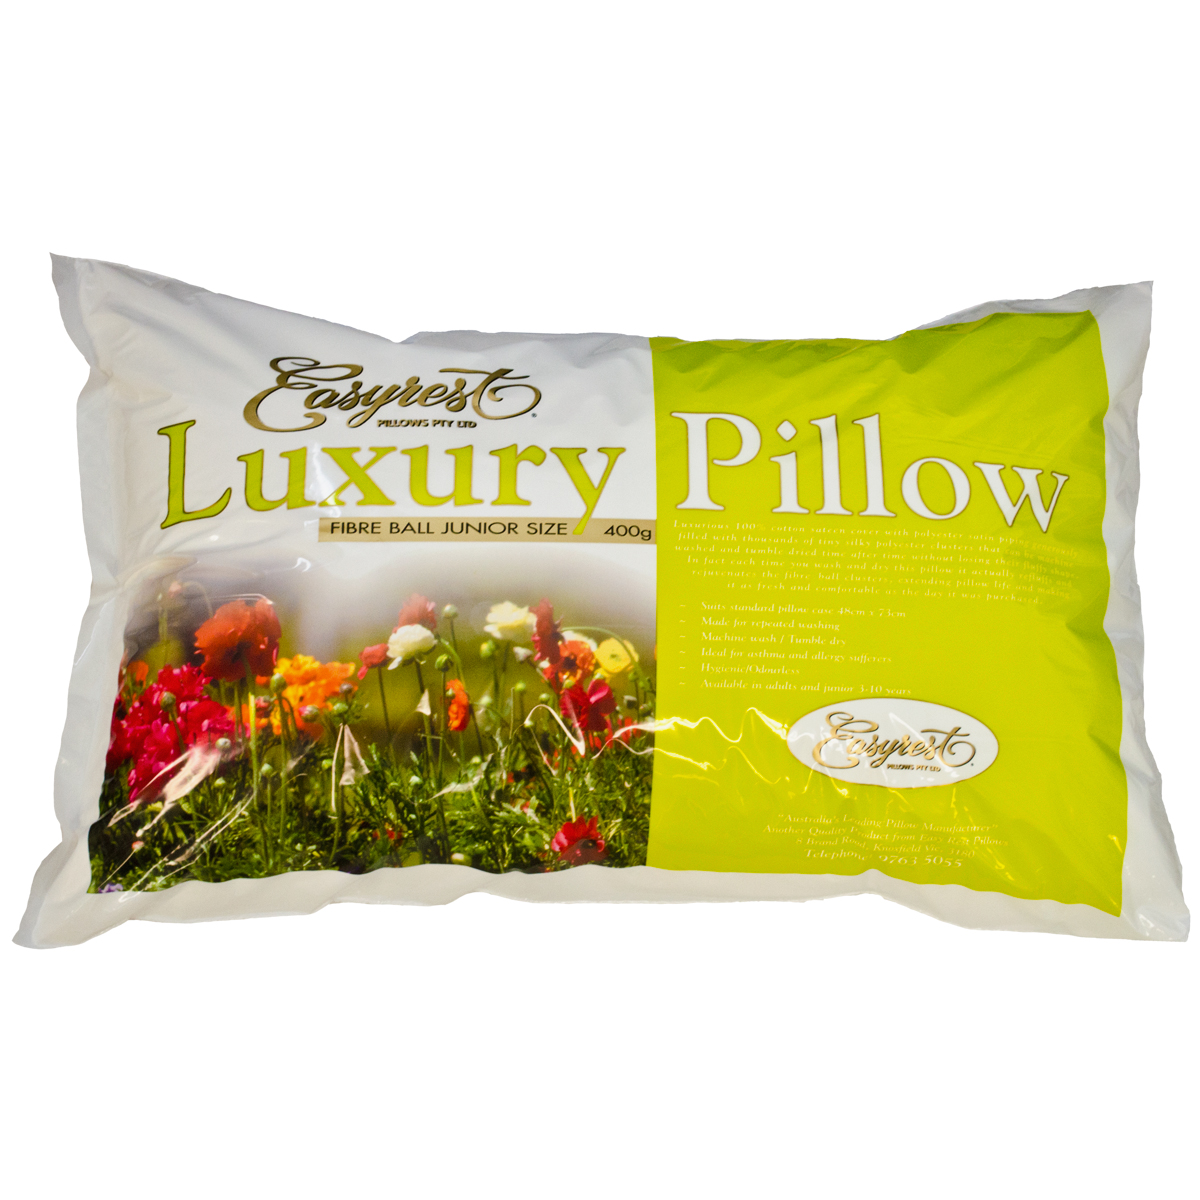 Easyrest Luxury Junior Pillow